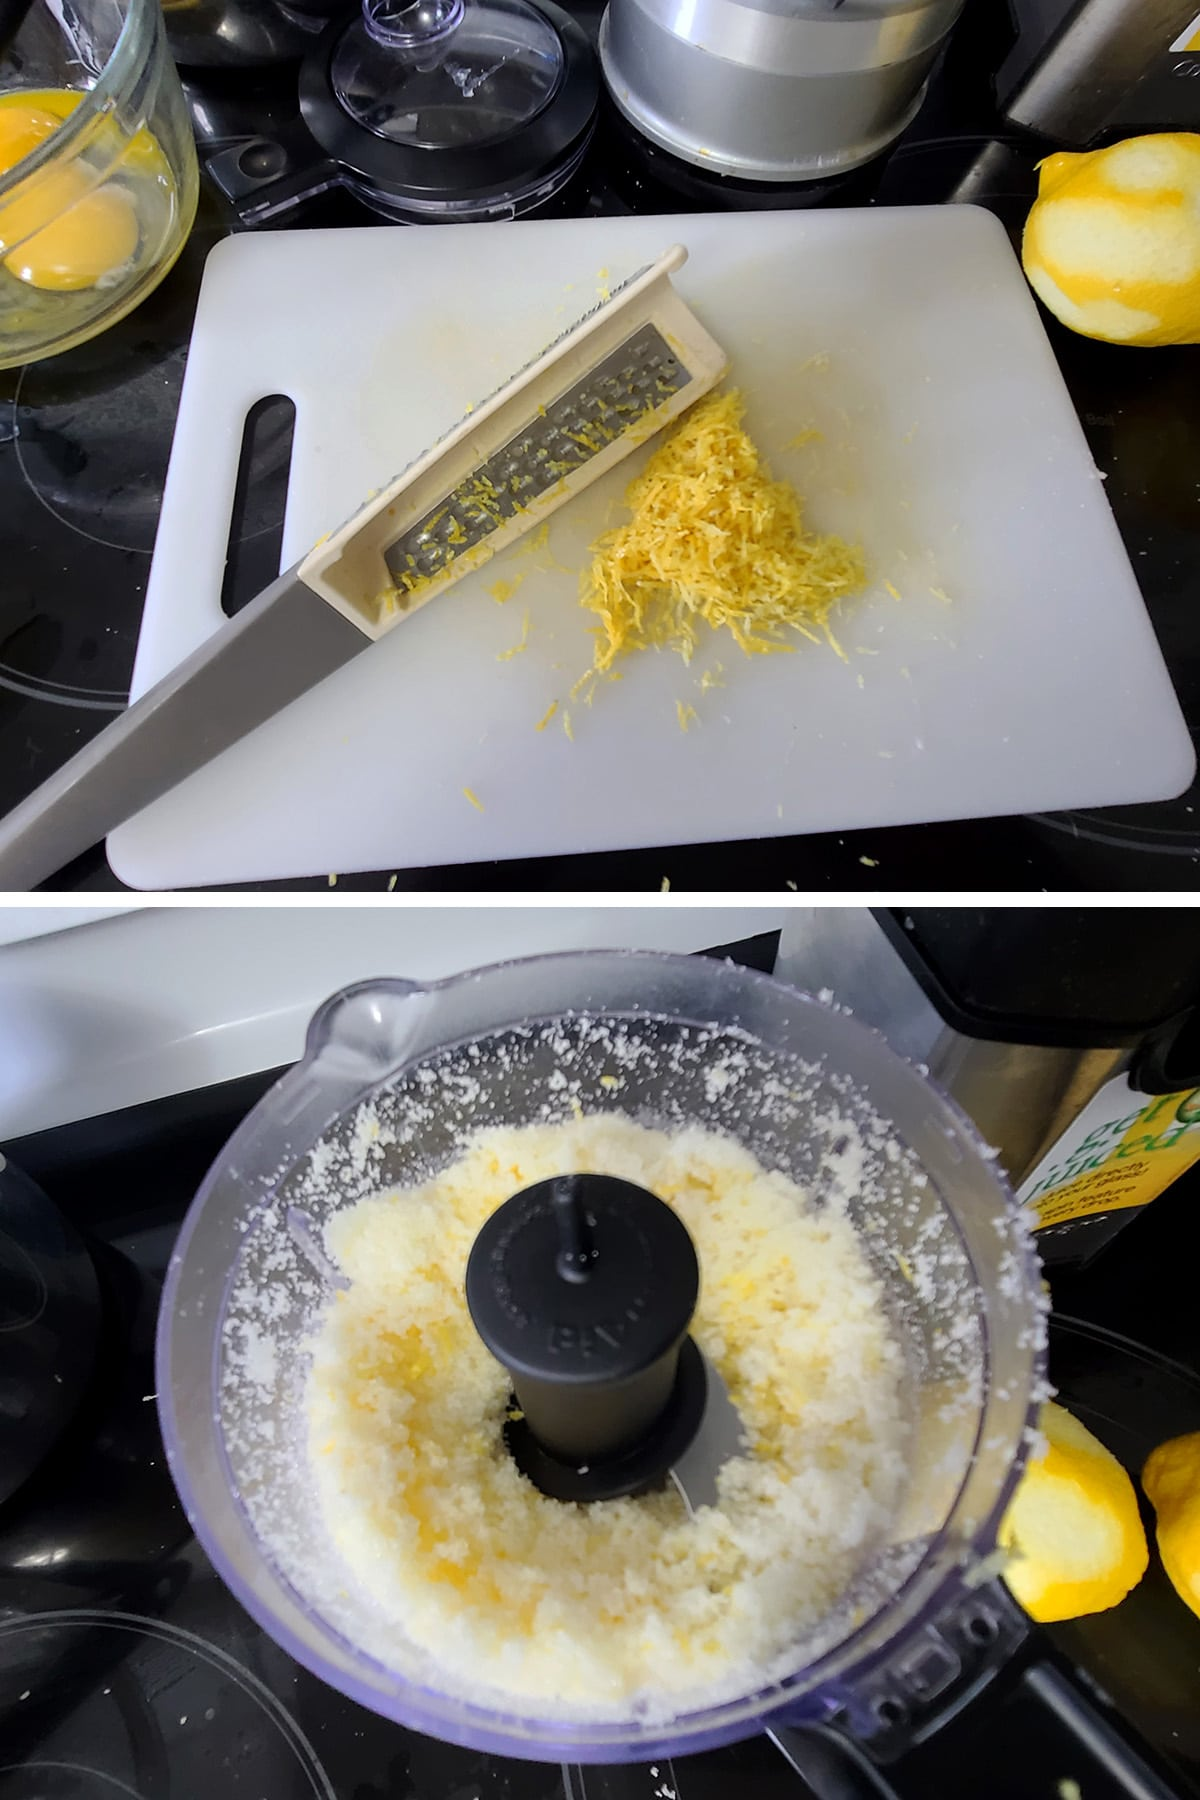 The zest from a lemon being added to a small food processor.